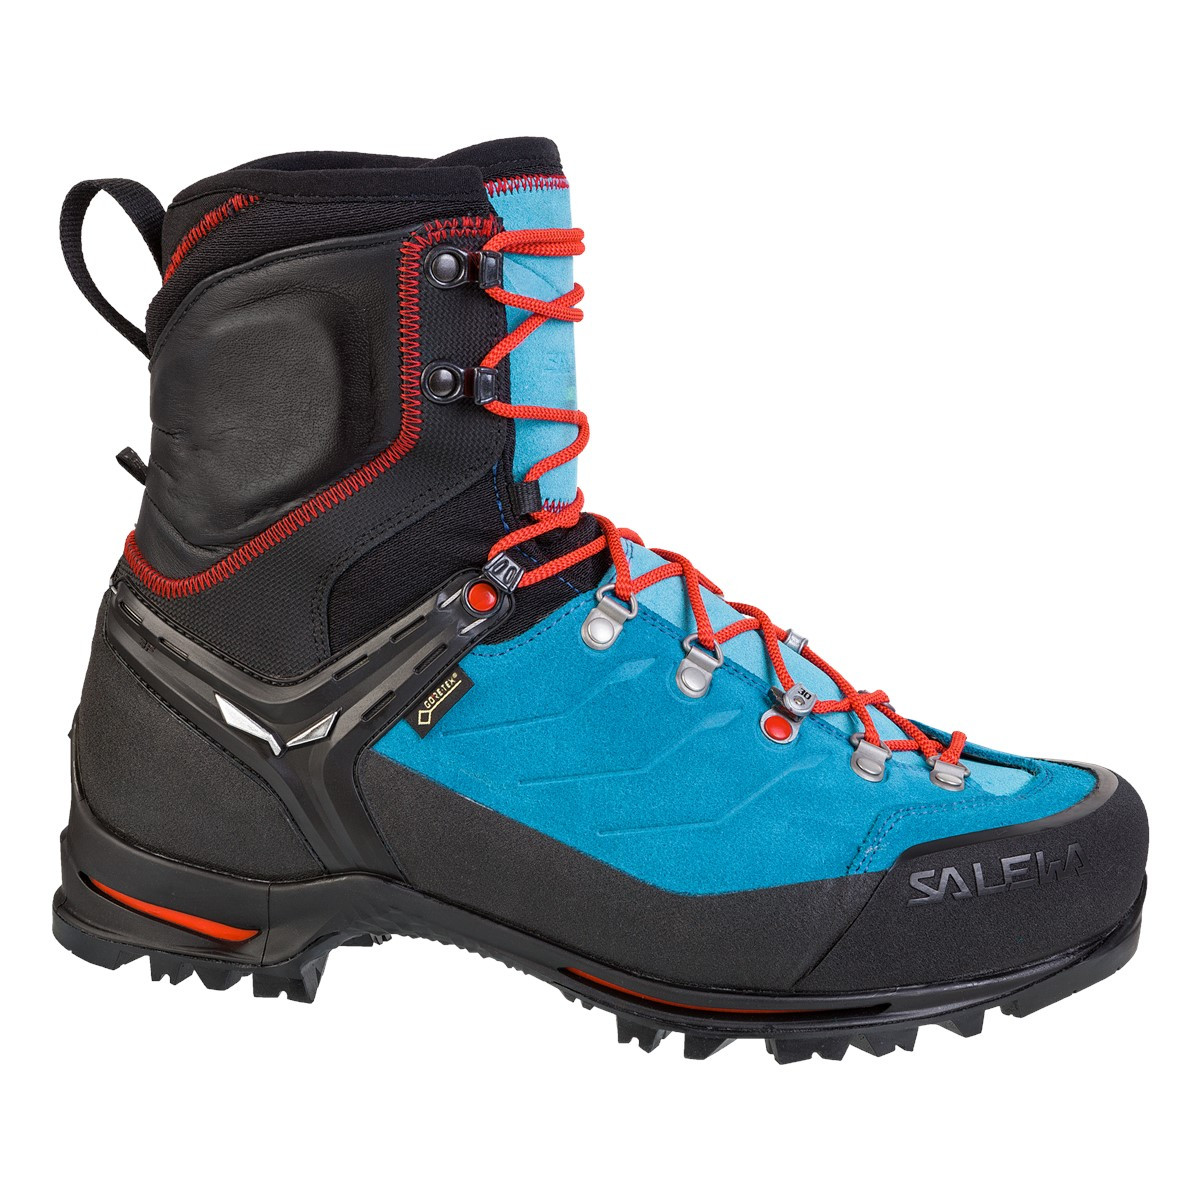 Salewa WS VULTUR EVO GTX - Princess Blue/Rose Red - 5